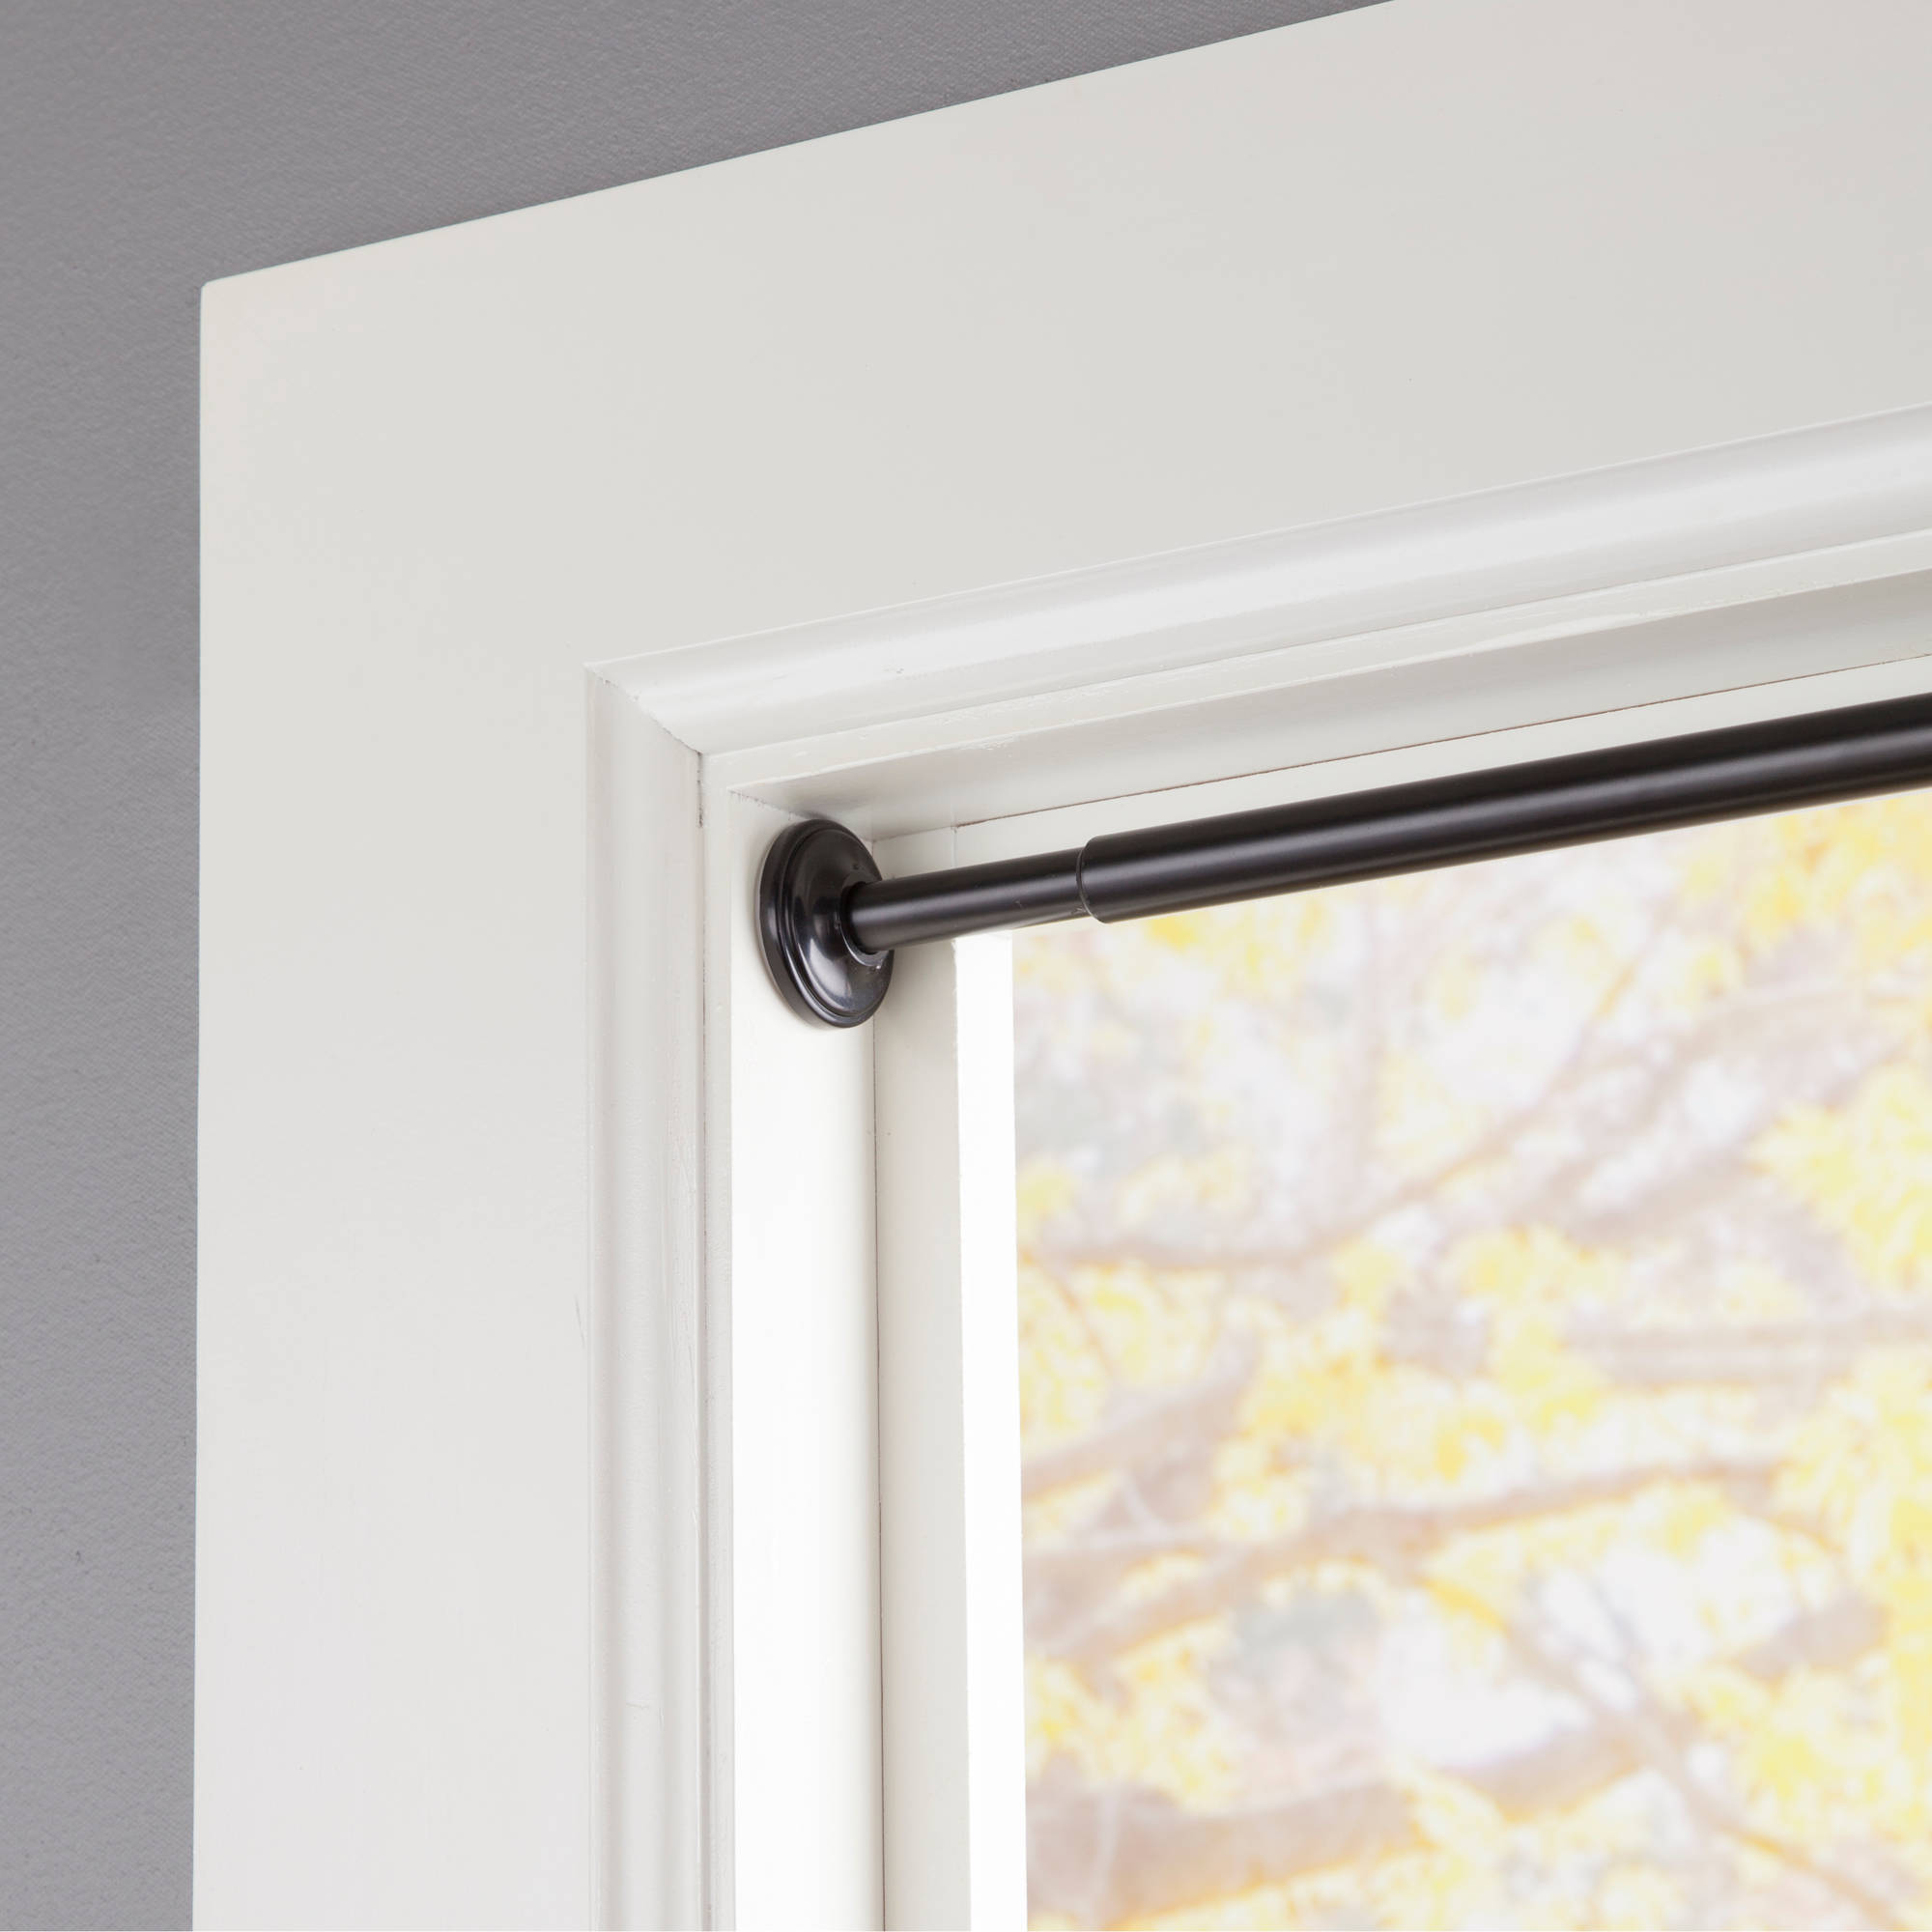 "eclipse 5/8"" Diameter Room Darkening Tension Curtain Rod"